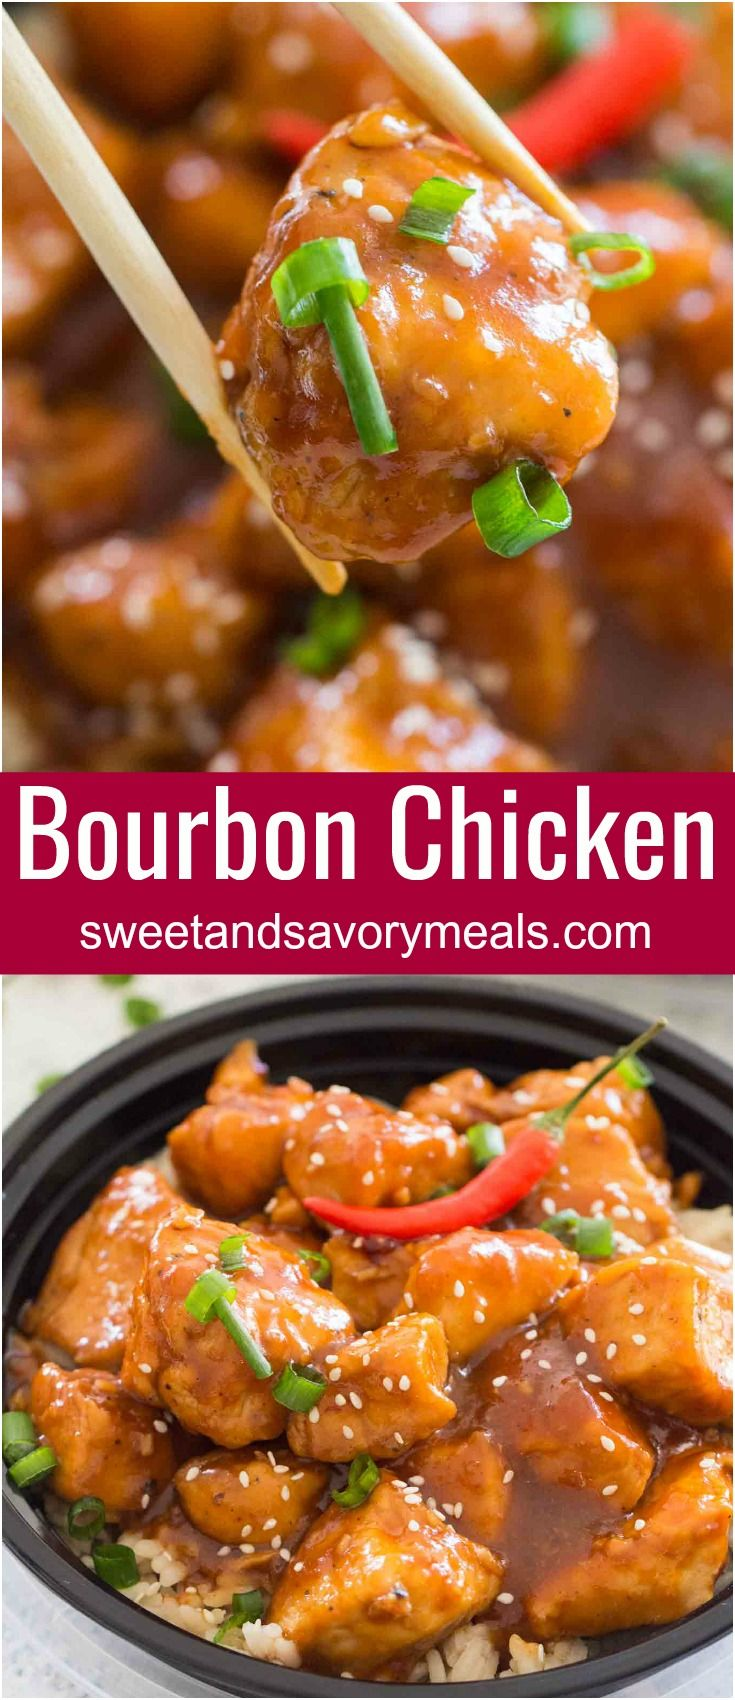 Spicy Bourbon Chicken is perfectly sweet, sticky and spicy, made in just one pan for a quick weeknight dinner with tasty leftovers.